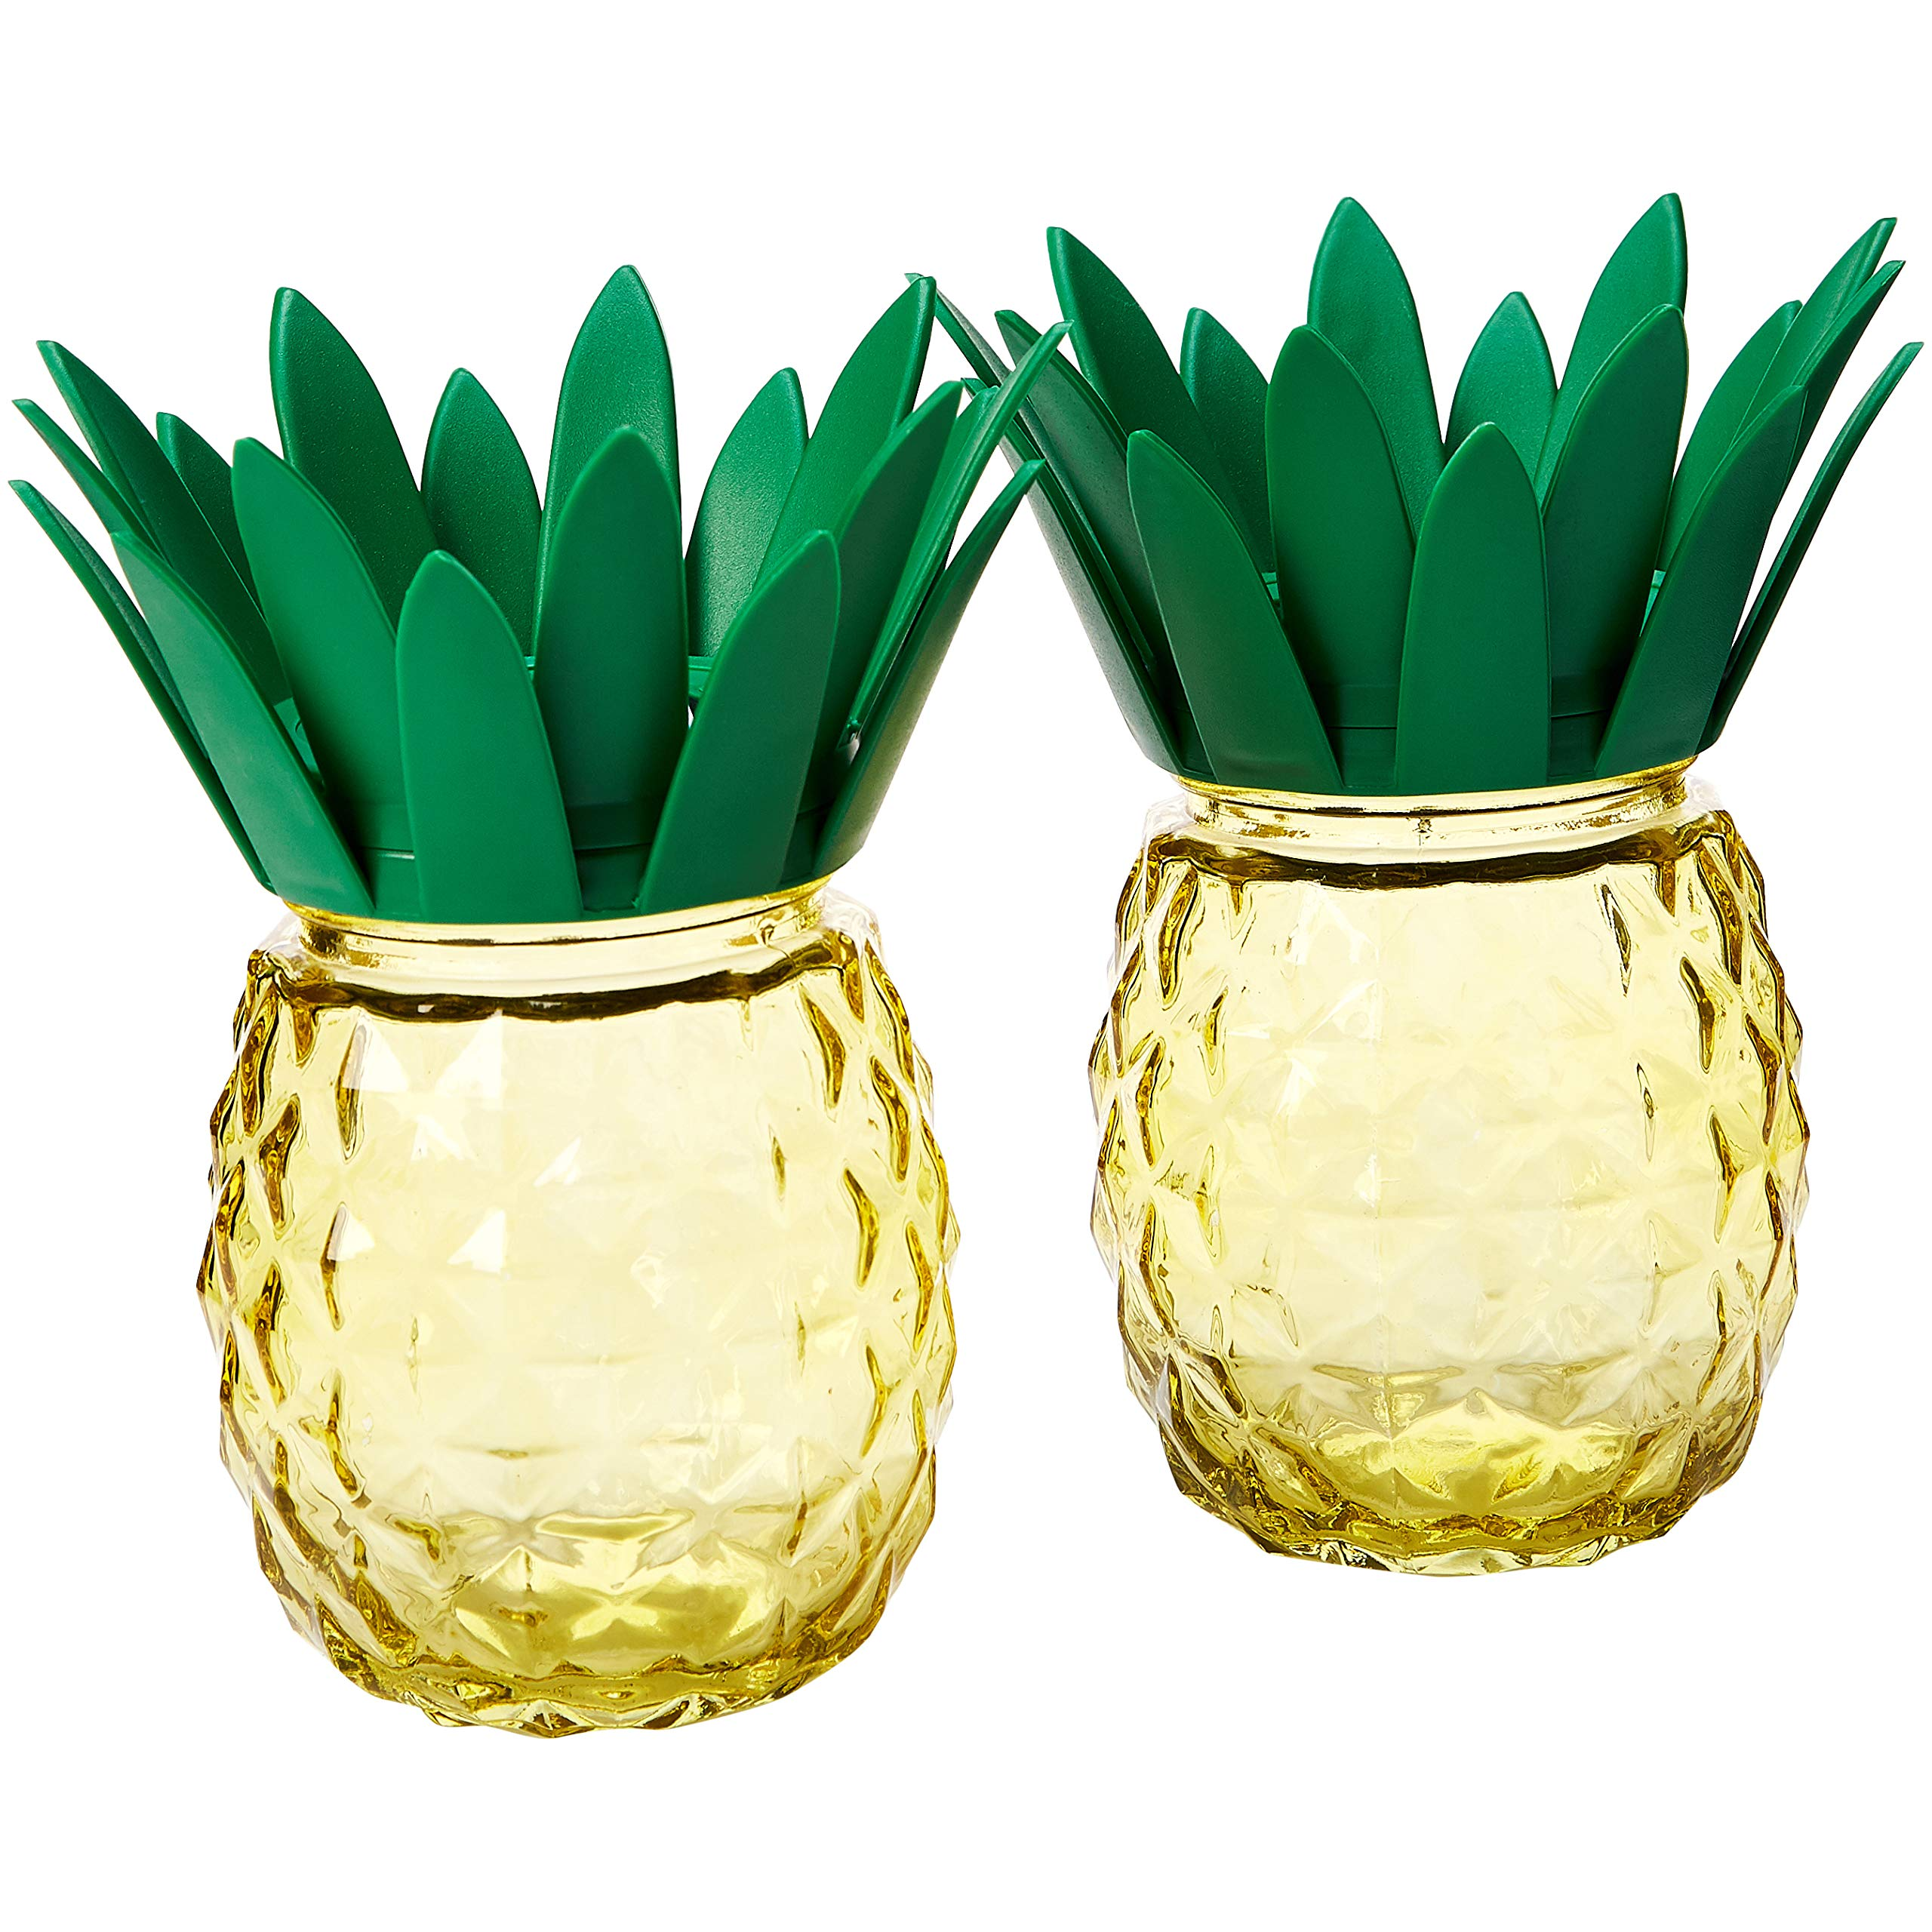 Solar Garden Light,Waterproof/Weatherproof Pineapple Solar Table Light for Garden, Patio, Party, Yard, Outdoor/Indoor Decorations (Set of 2) Zkee